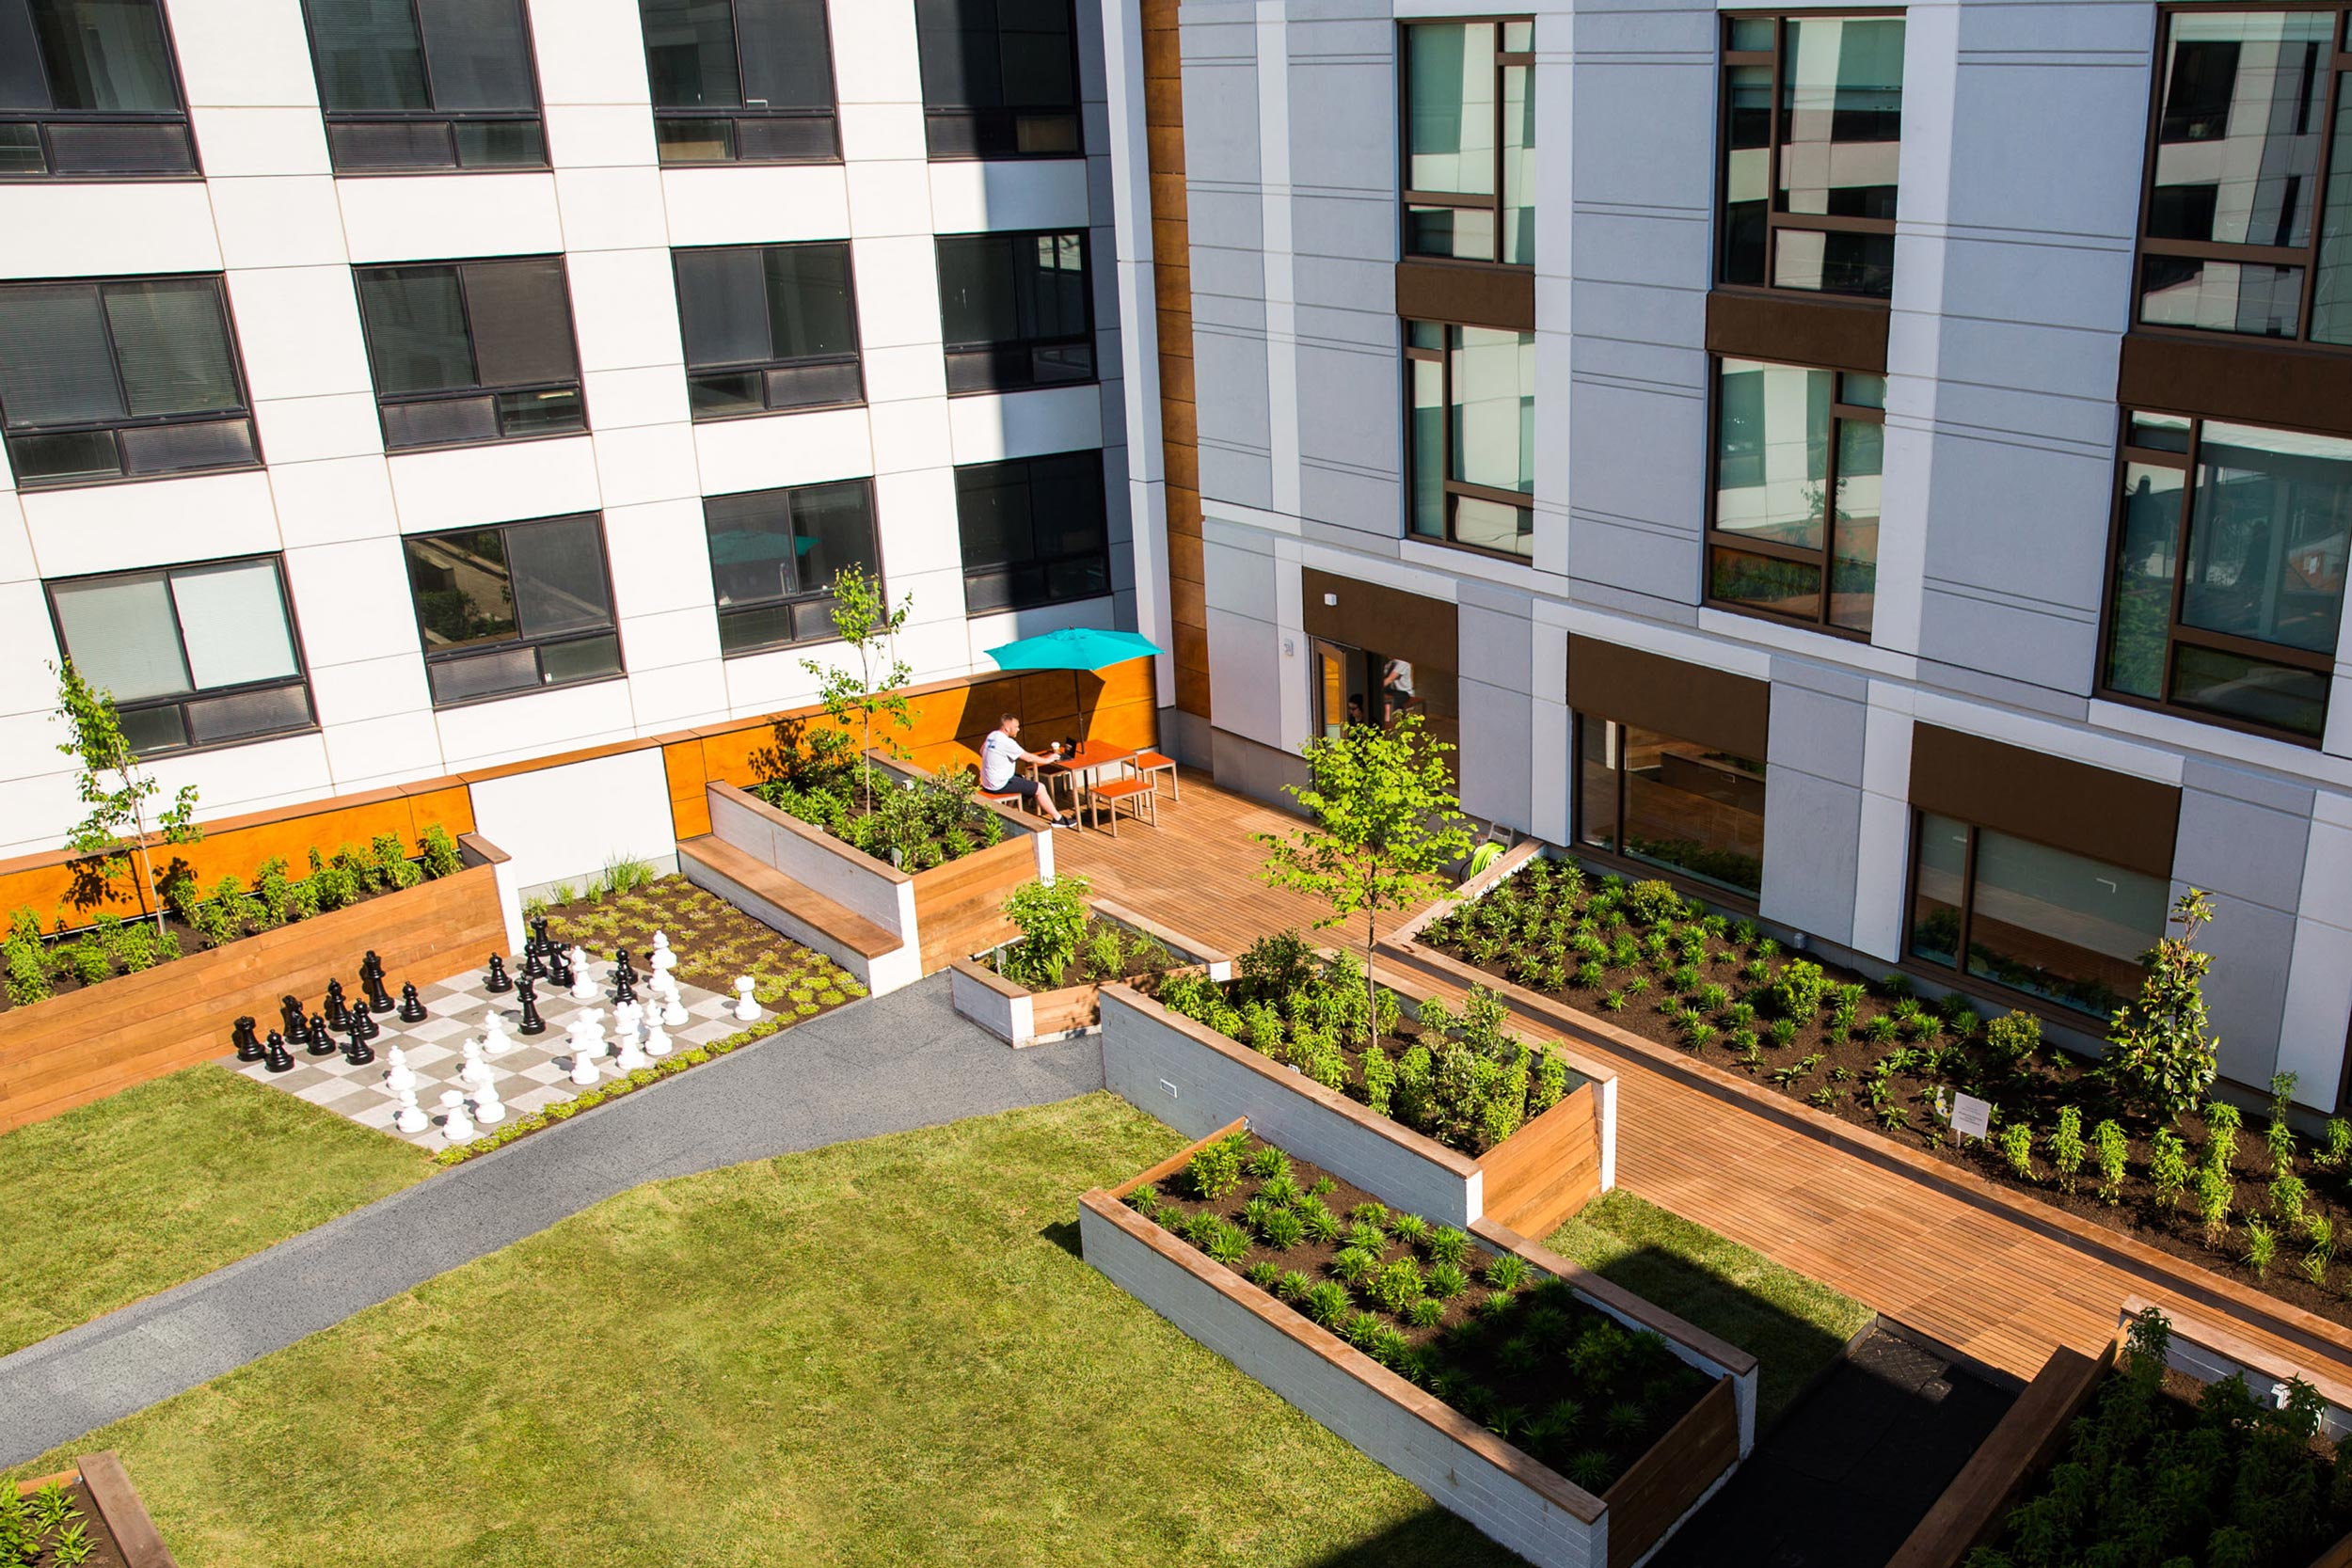 GCW constructed a green roof that included the installation of engineered soils, Ipe decking, custom raised planters & a lawn.